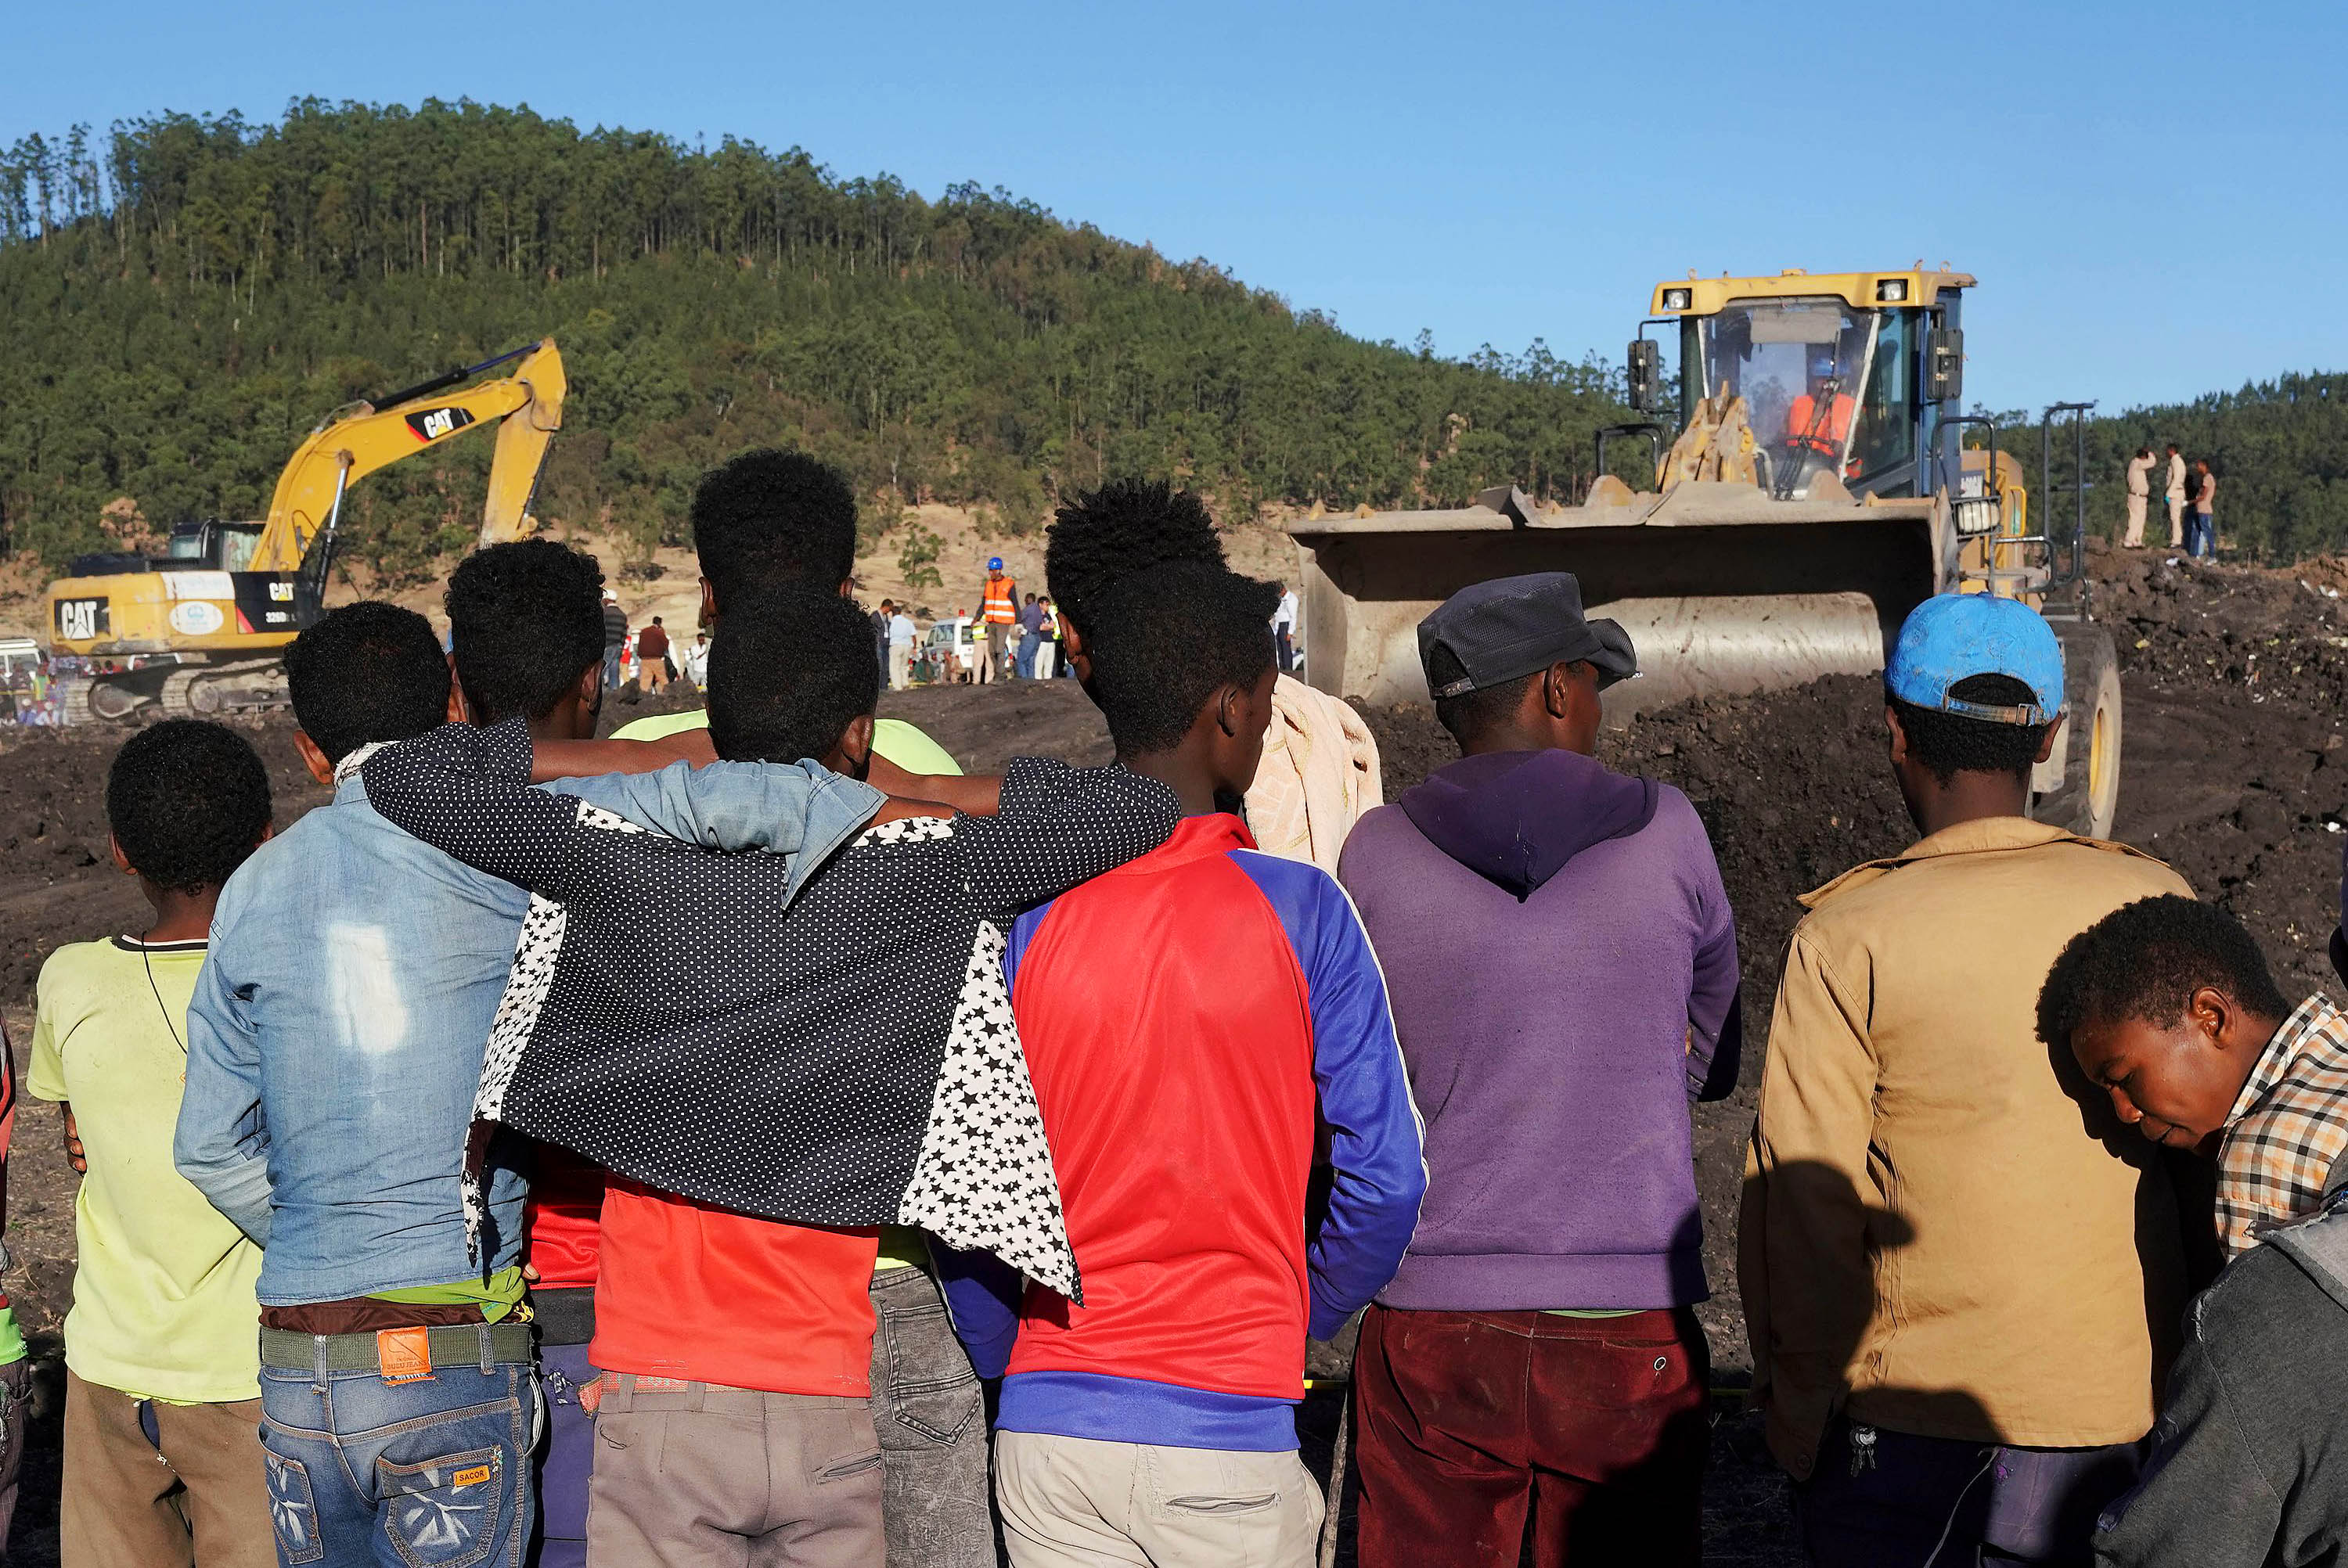 Local residents watch as recovery personnel scour the crater where Ethiopian Airlines Flight 302 went down.